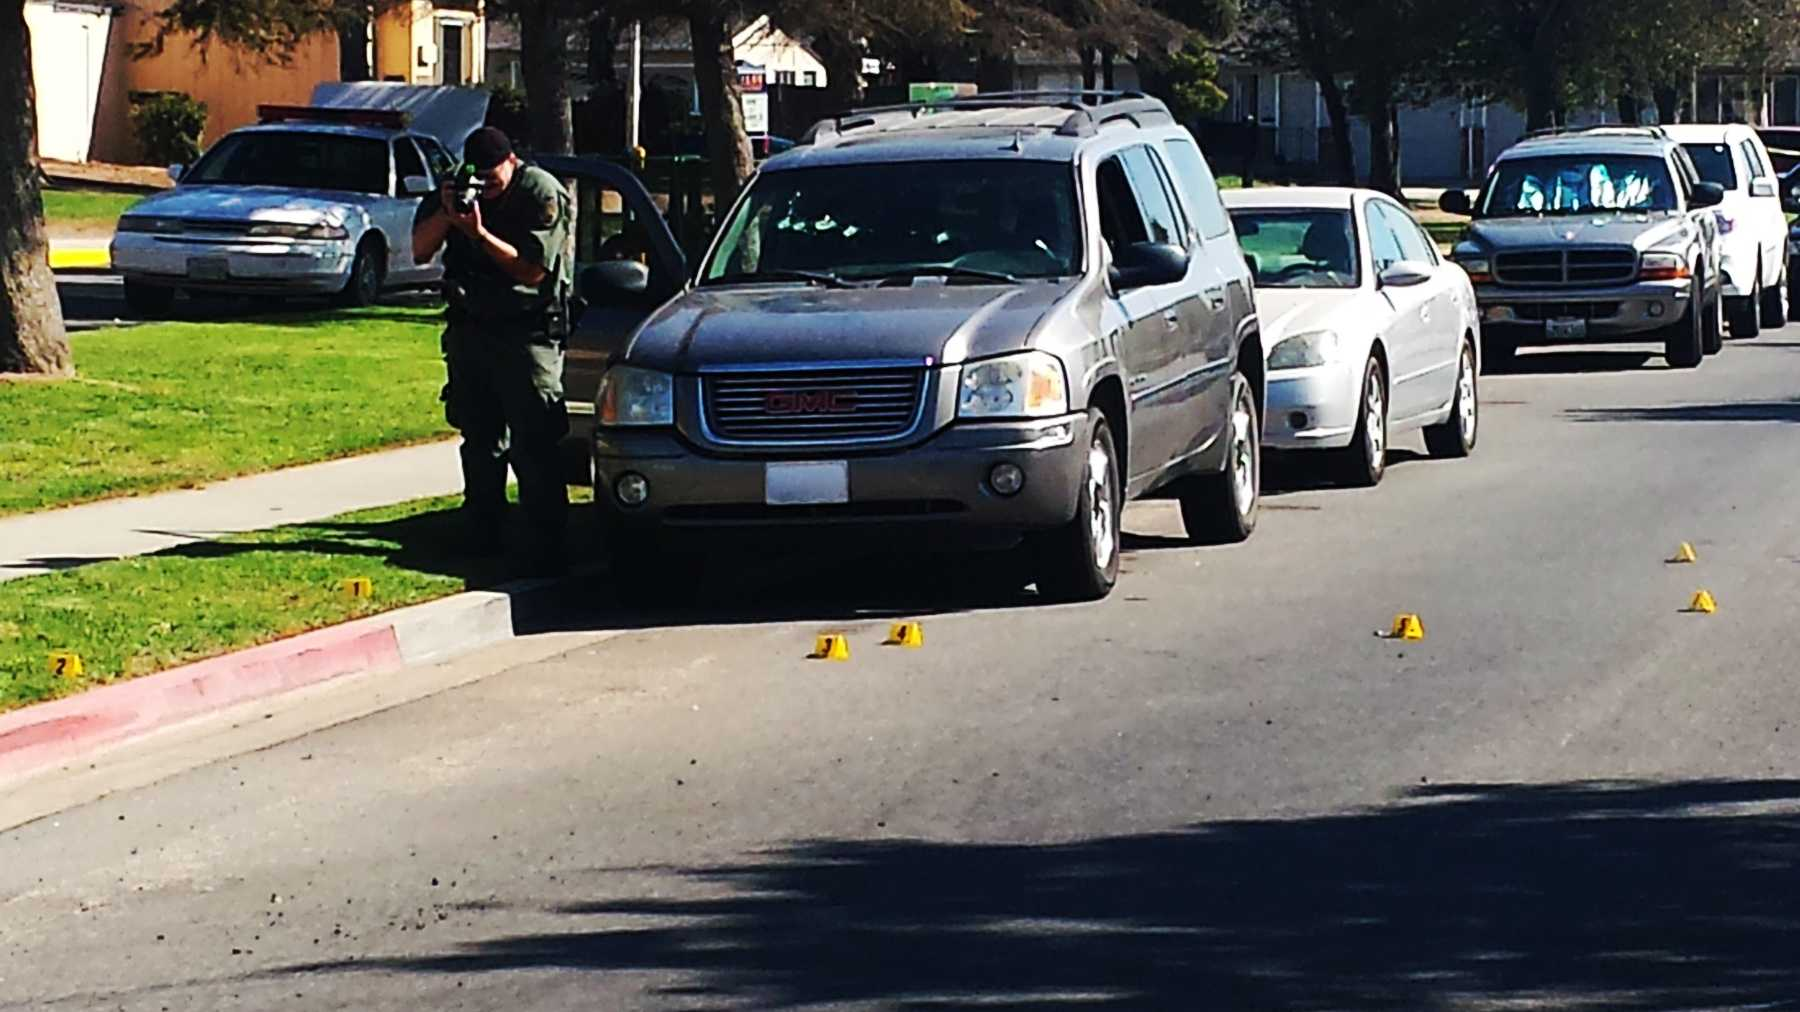 A man was shot in the chest while sitting in this SUV outside a Soledad school. (Sept. 3, 2014)